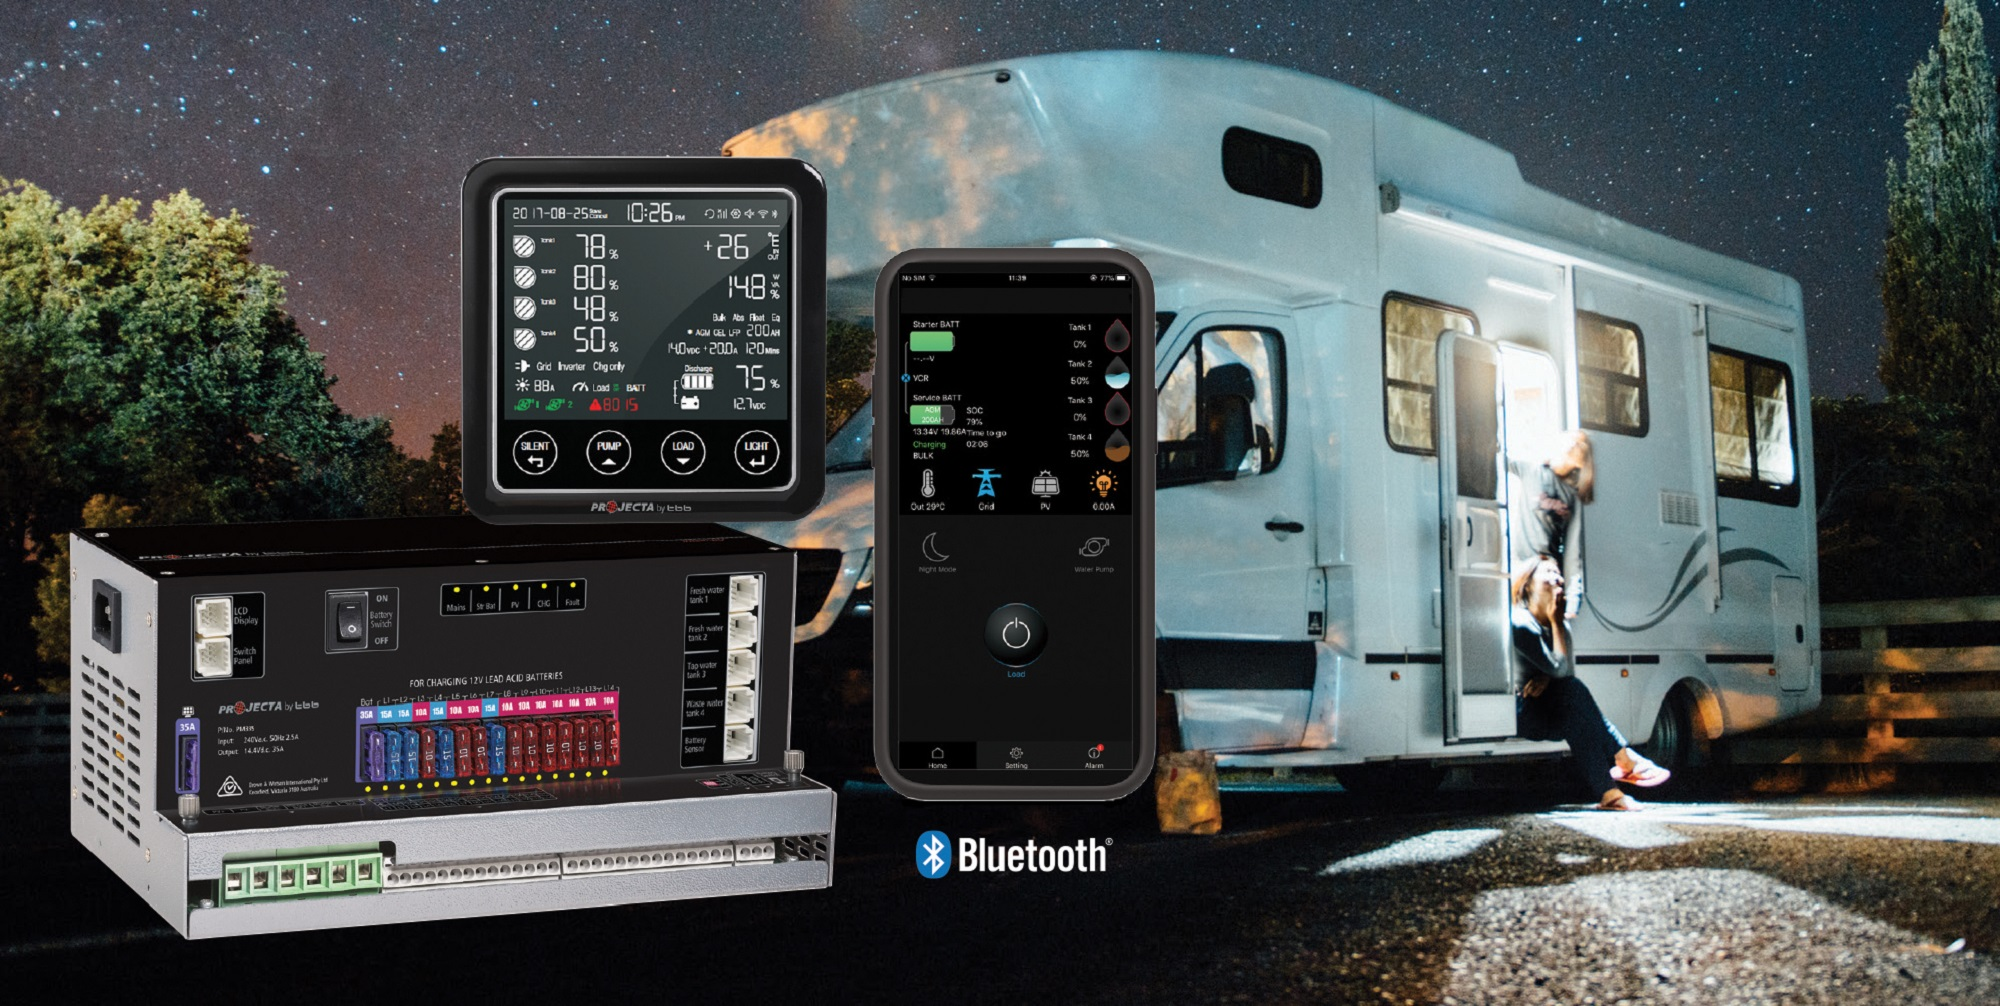 Projecta Intelli-RV Pm300 Bt Includes Bluetooth